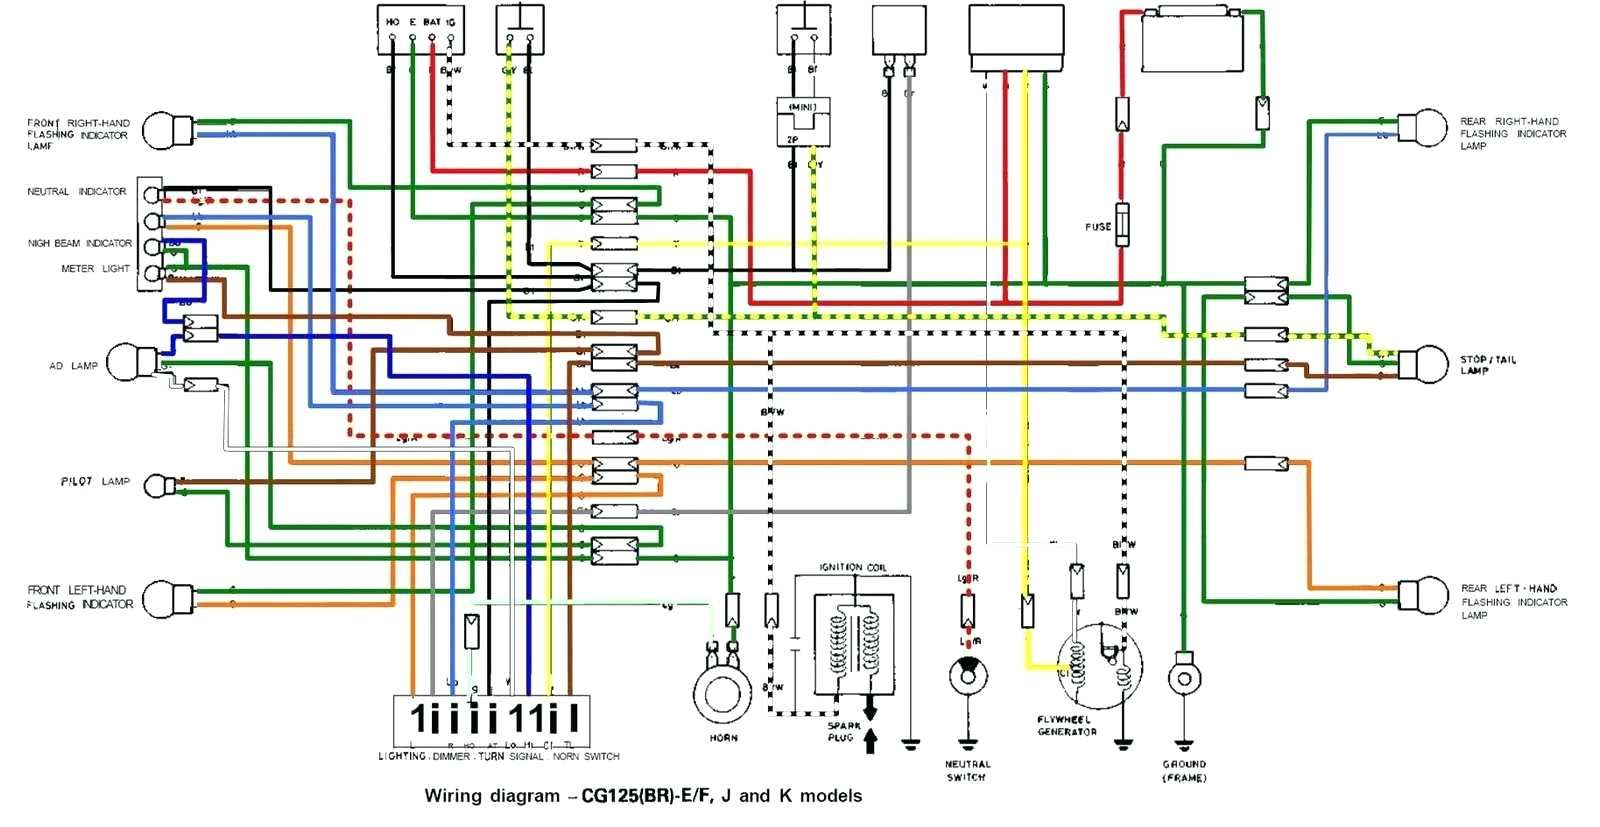 small resolution of honda xrm 125 wiring diagram photography cheat sheets honda xrm signal light wiring honda xrm 125